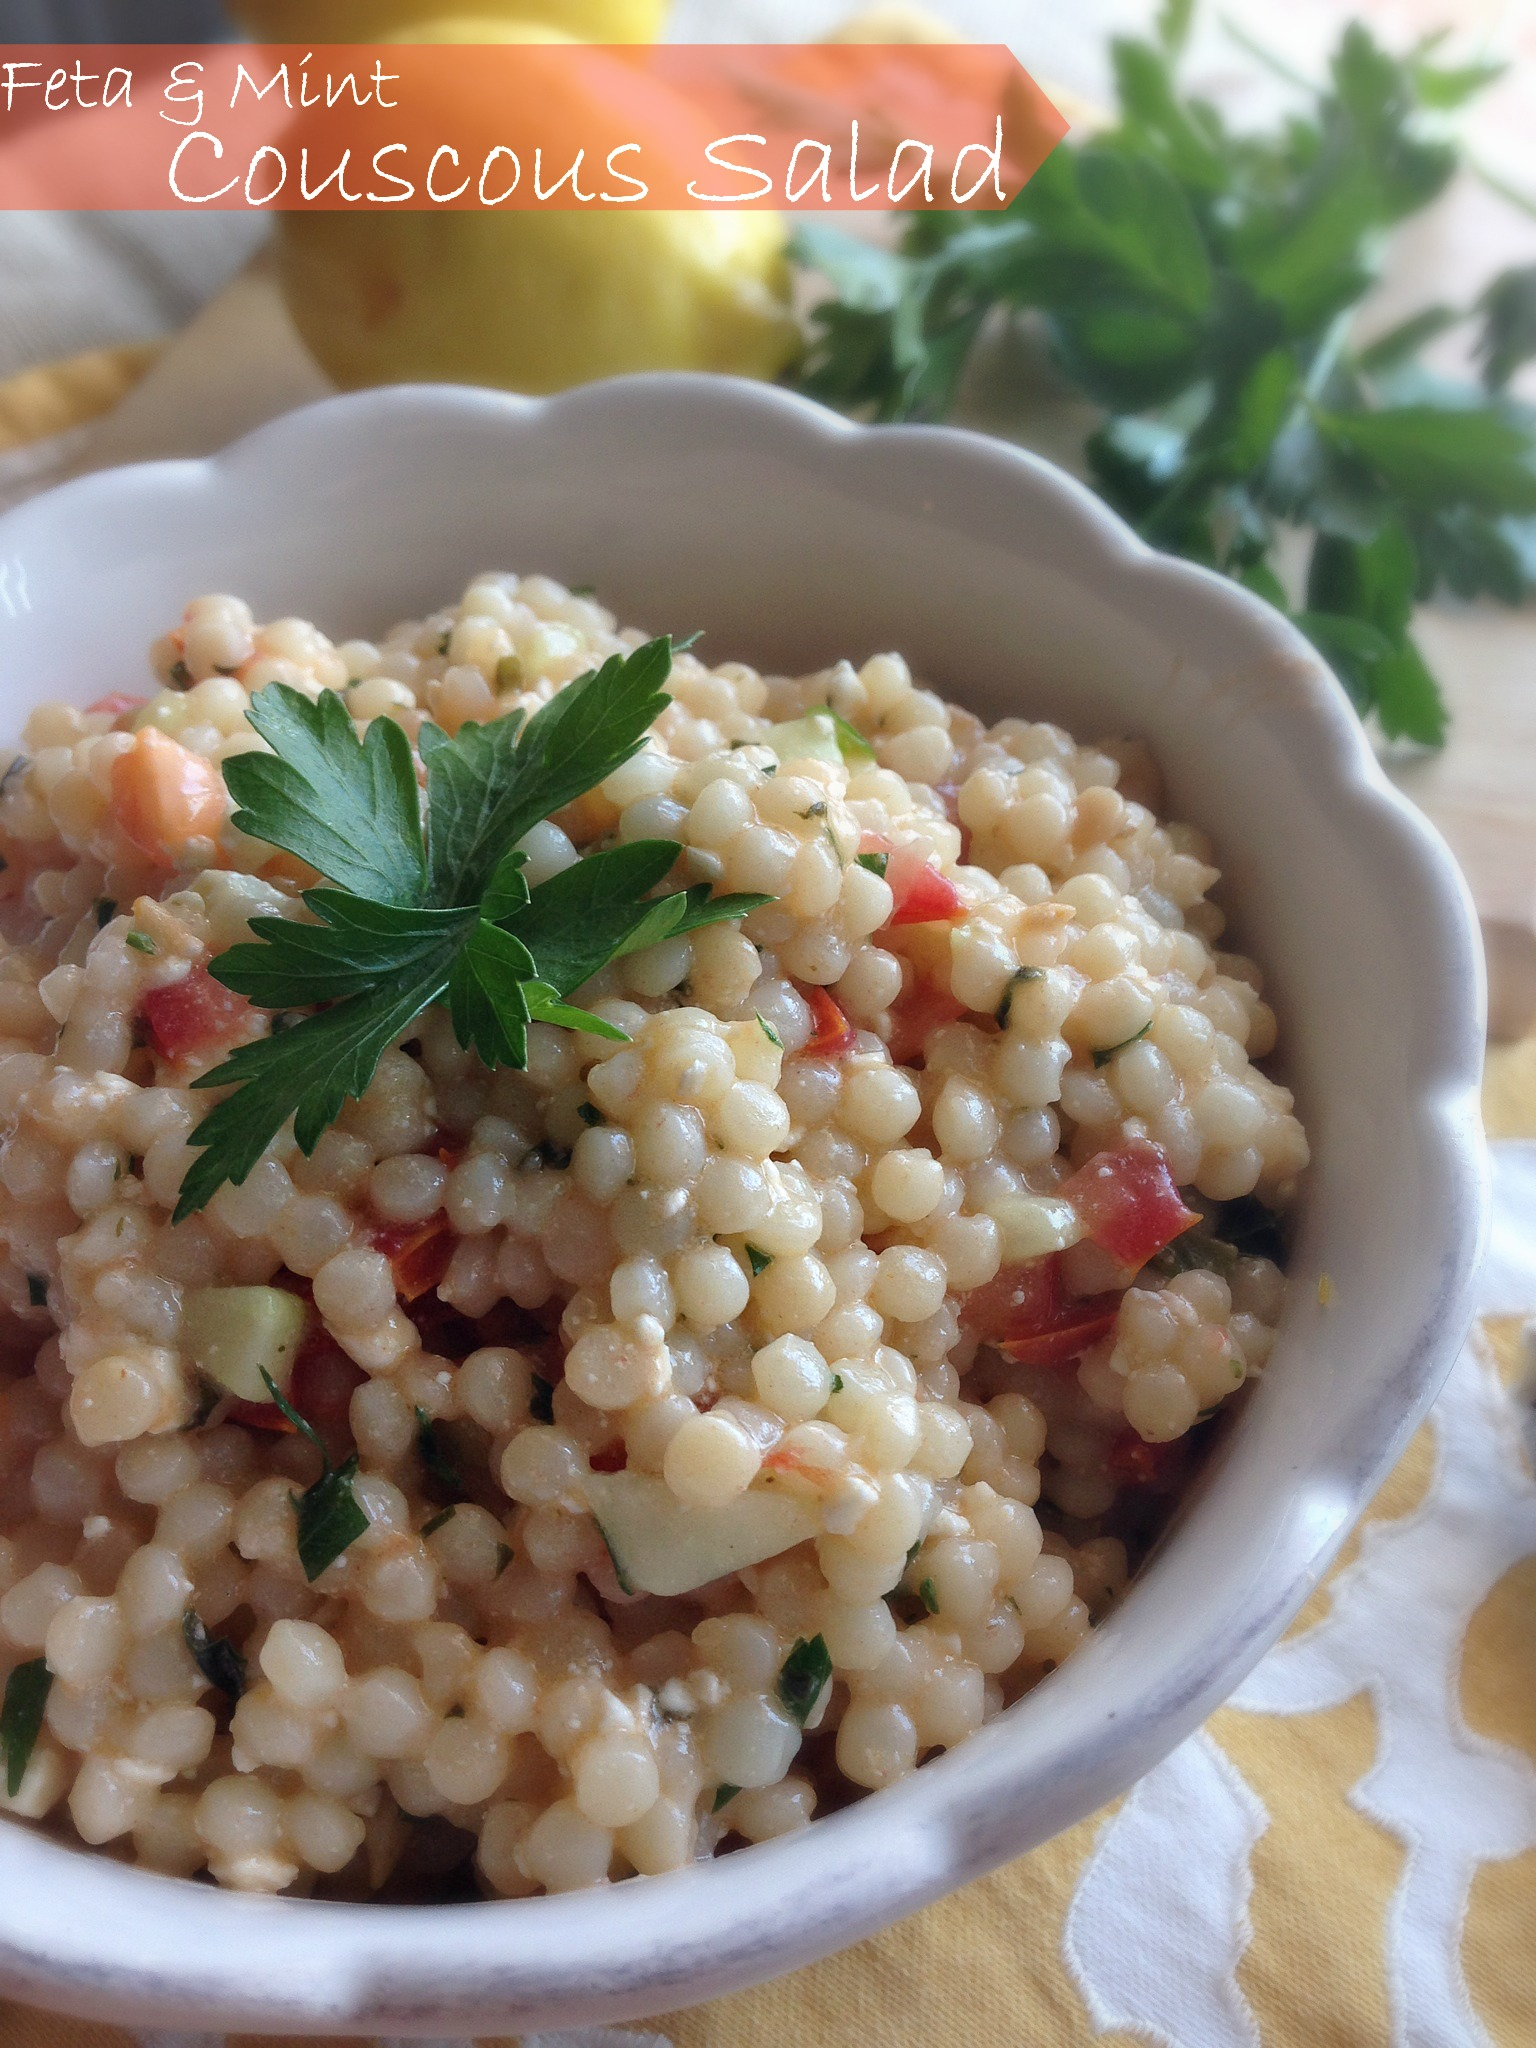 Feta & Mint Couscous Salad